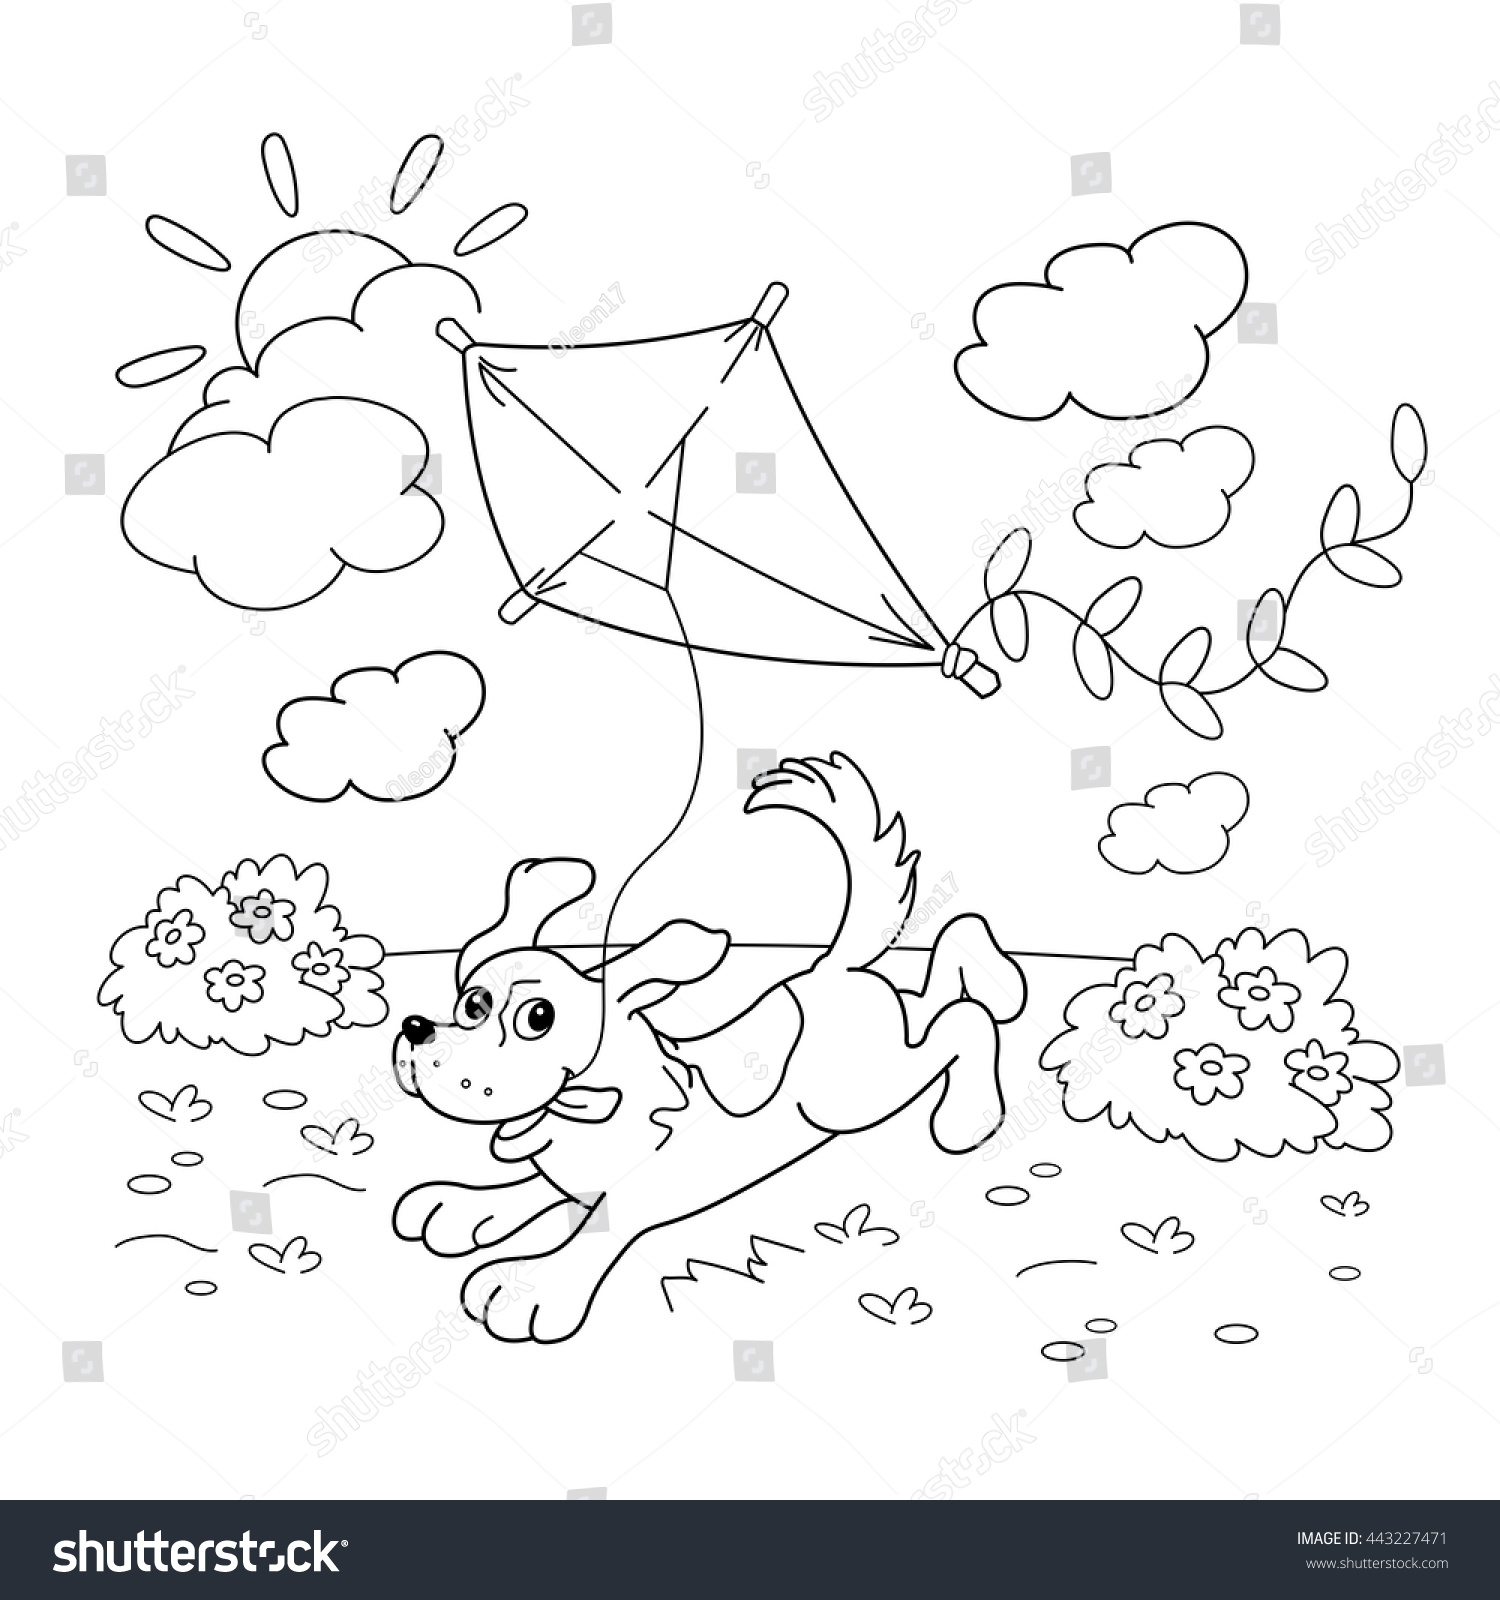 Coloring page outline of cartoon dog with a kite coloring book for kids